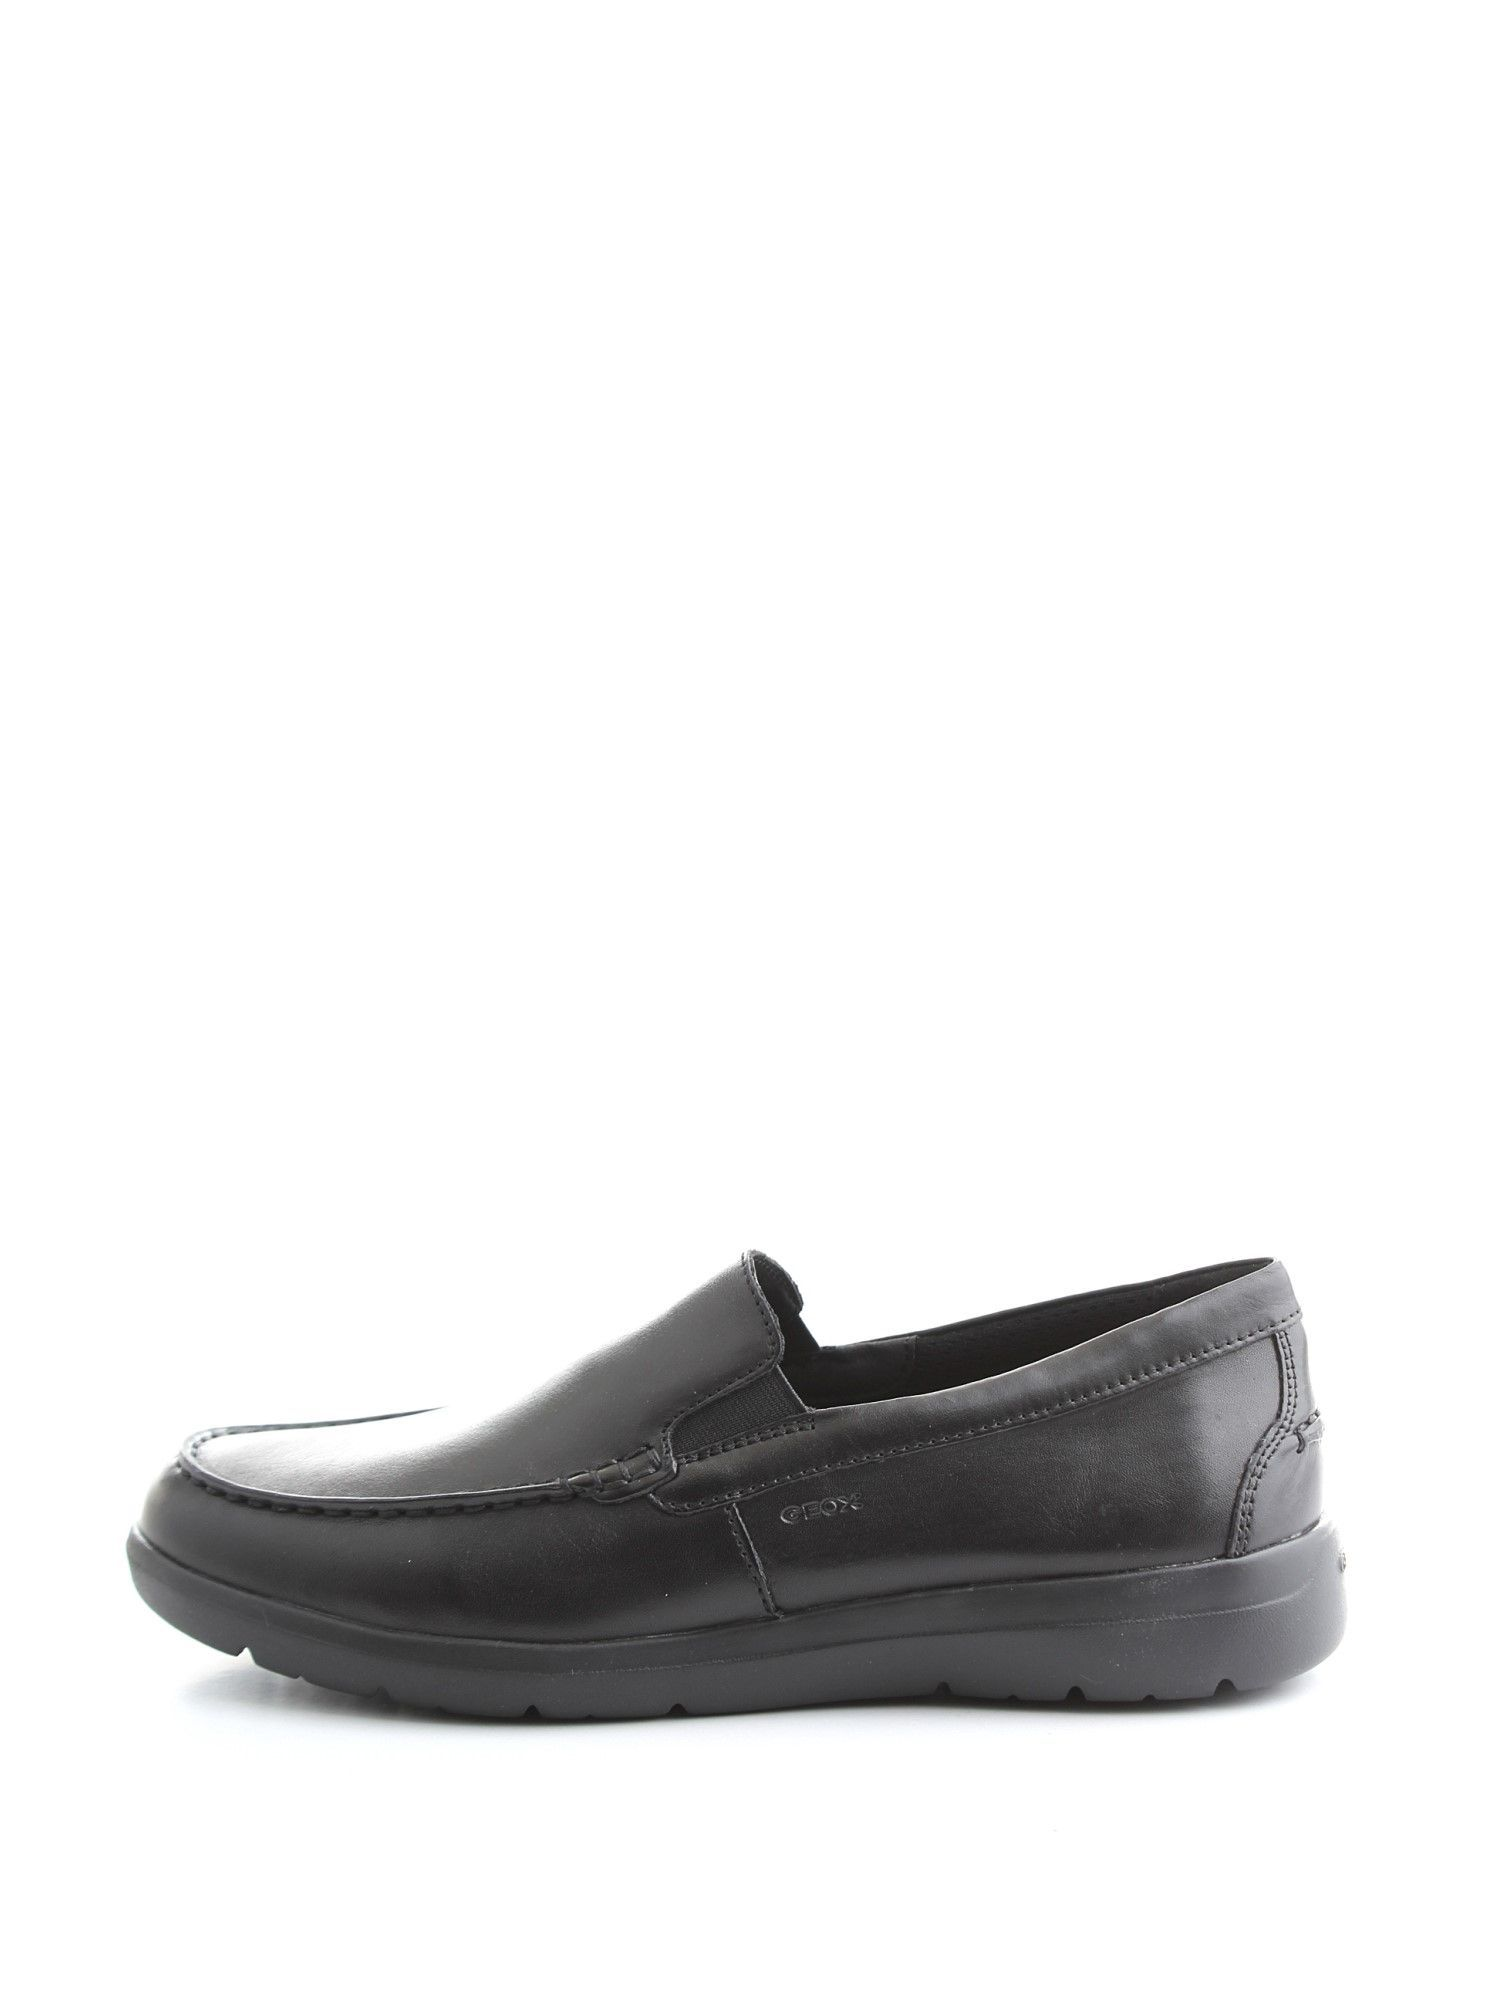 GEOX MEN'S U743QC00043C9999 BLACK LEATHER LOAFERS